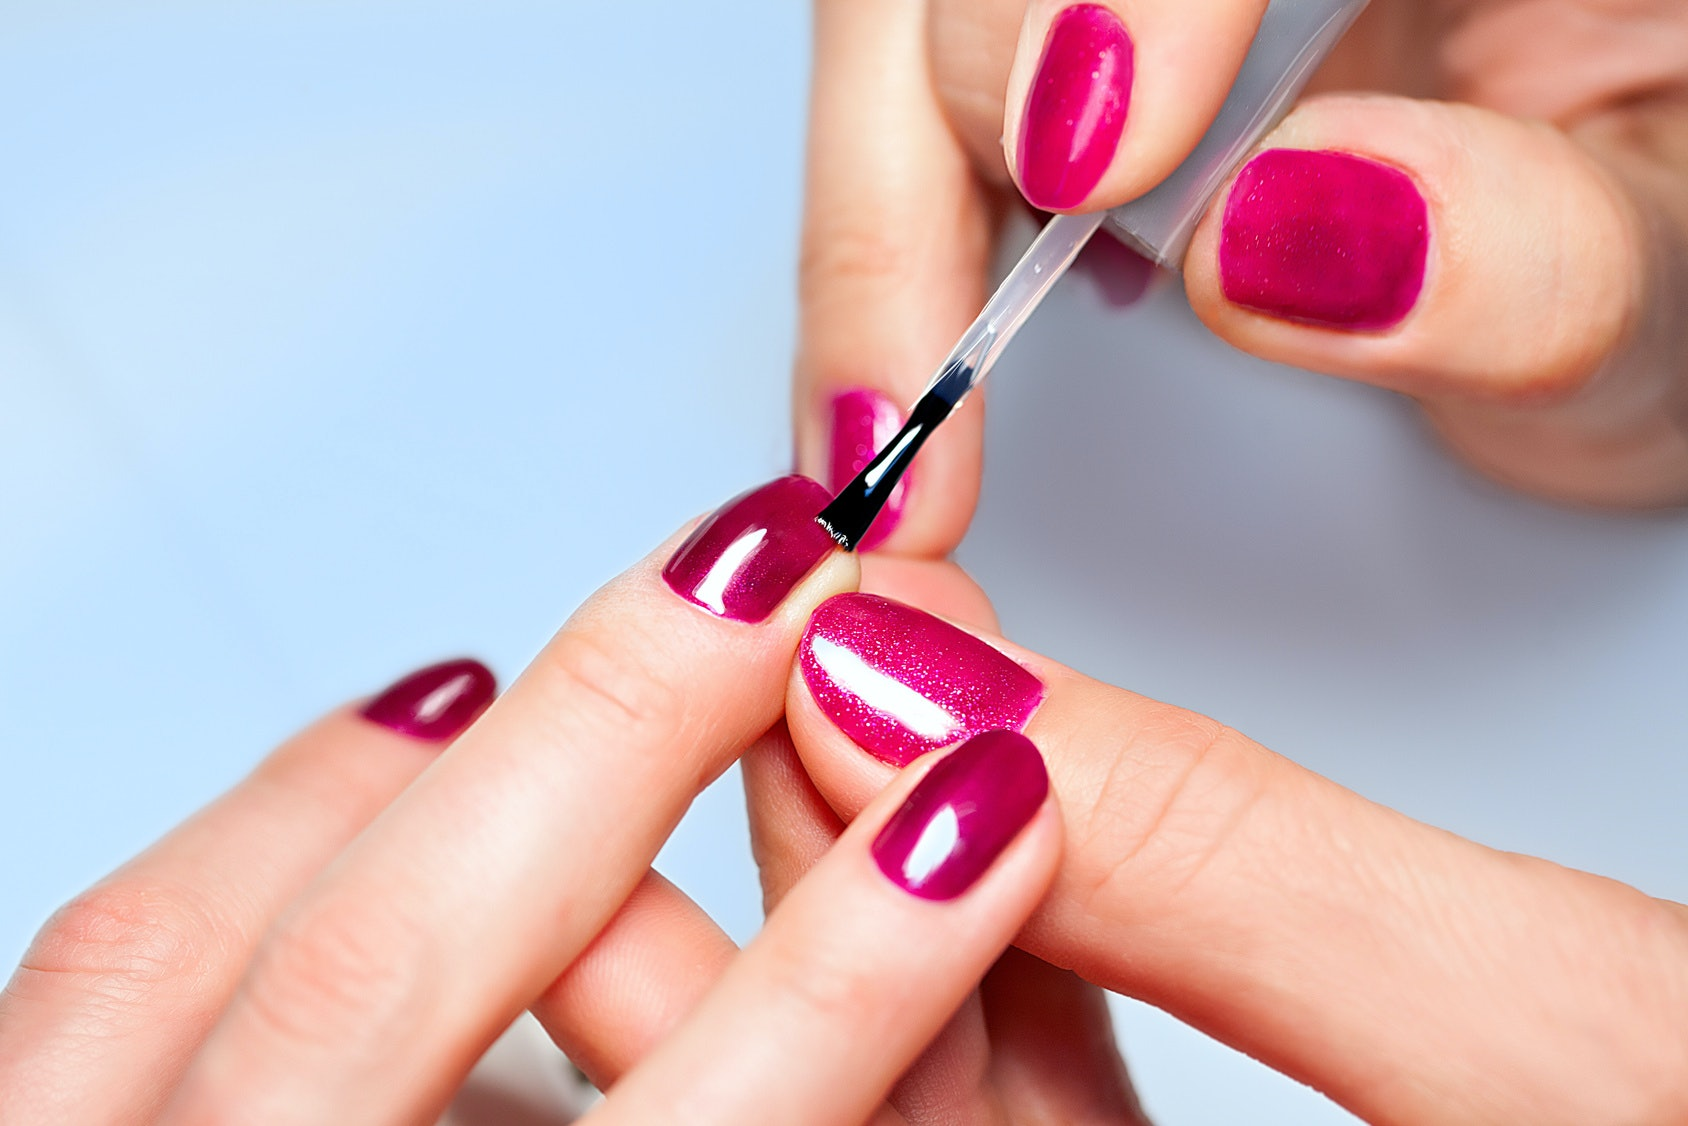 10 Things Tipsy Nail Art Girl Taught Us About Doing A Drunk Manicure ...